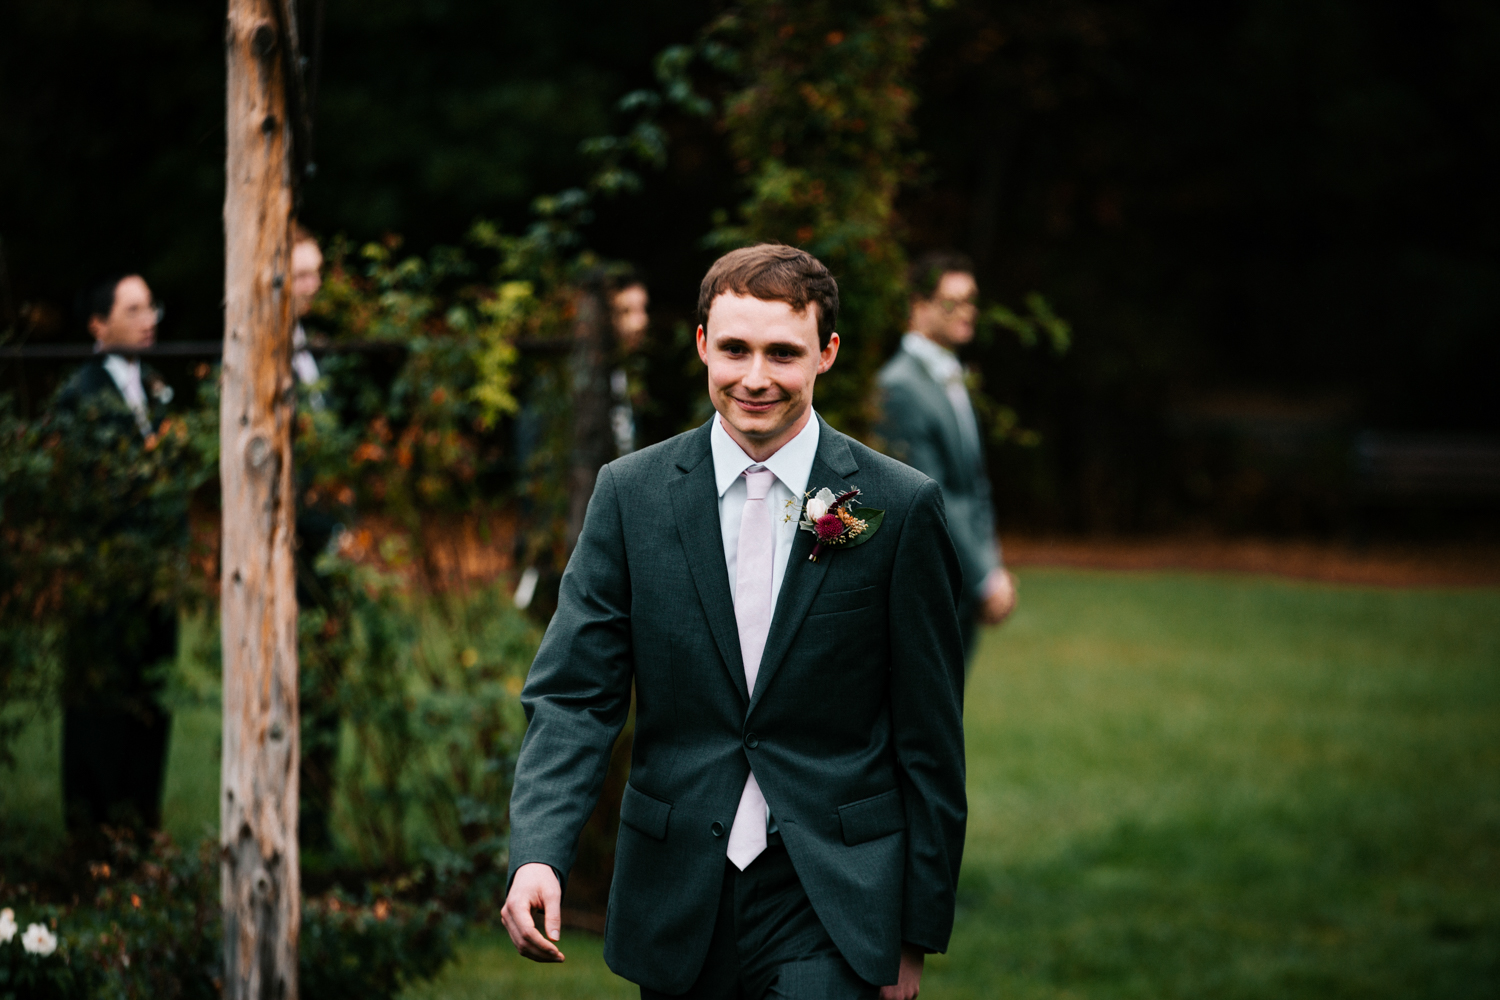 groom-rain-wedding-new-england-fall-autumn-wedding-hartford-connecticut-ct-ma-ri.jpg